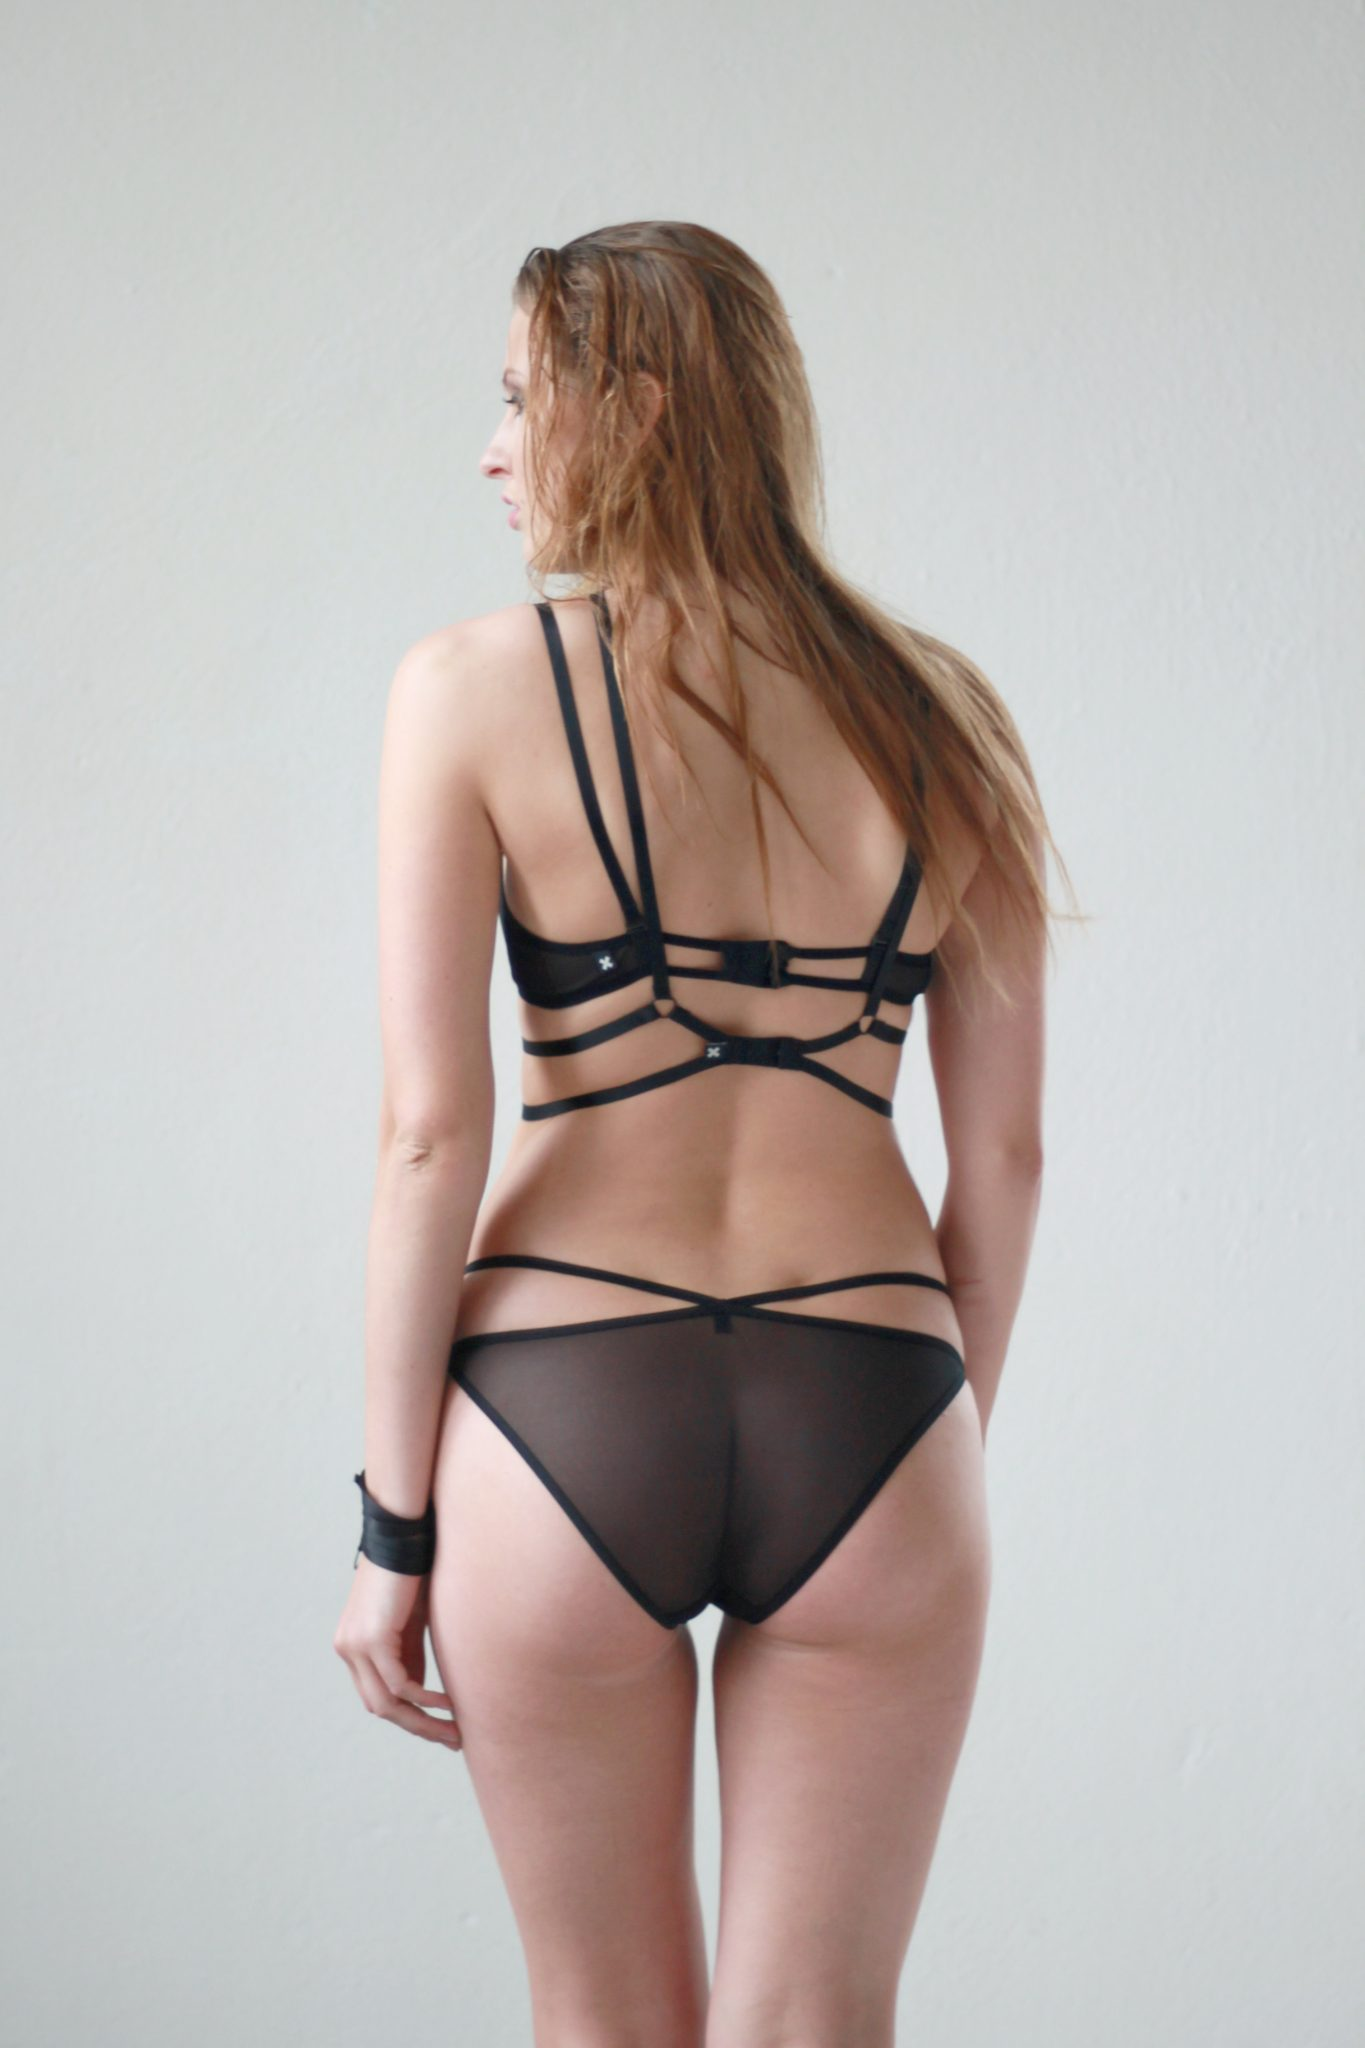 black mesh diamond shaped panties with straps flashyouandme